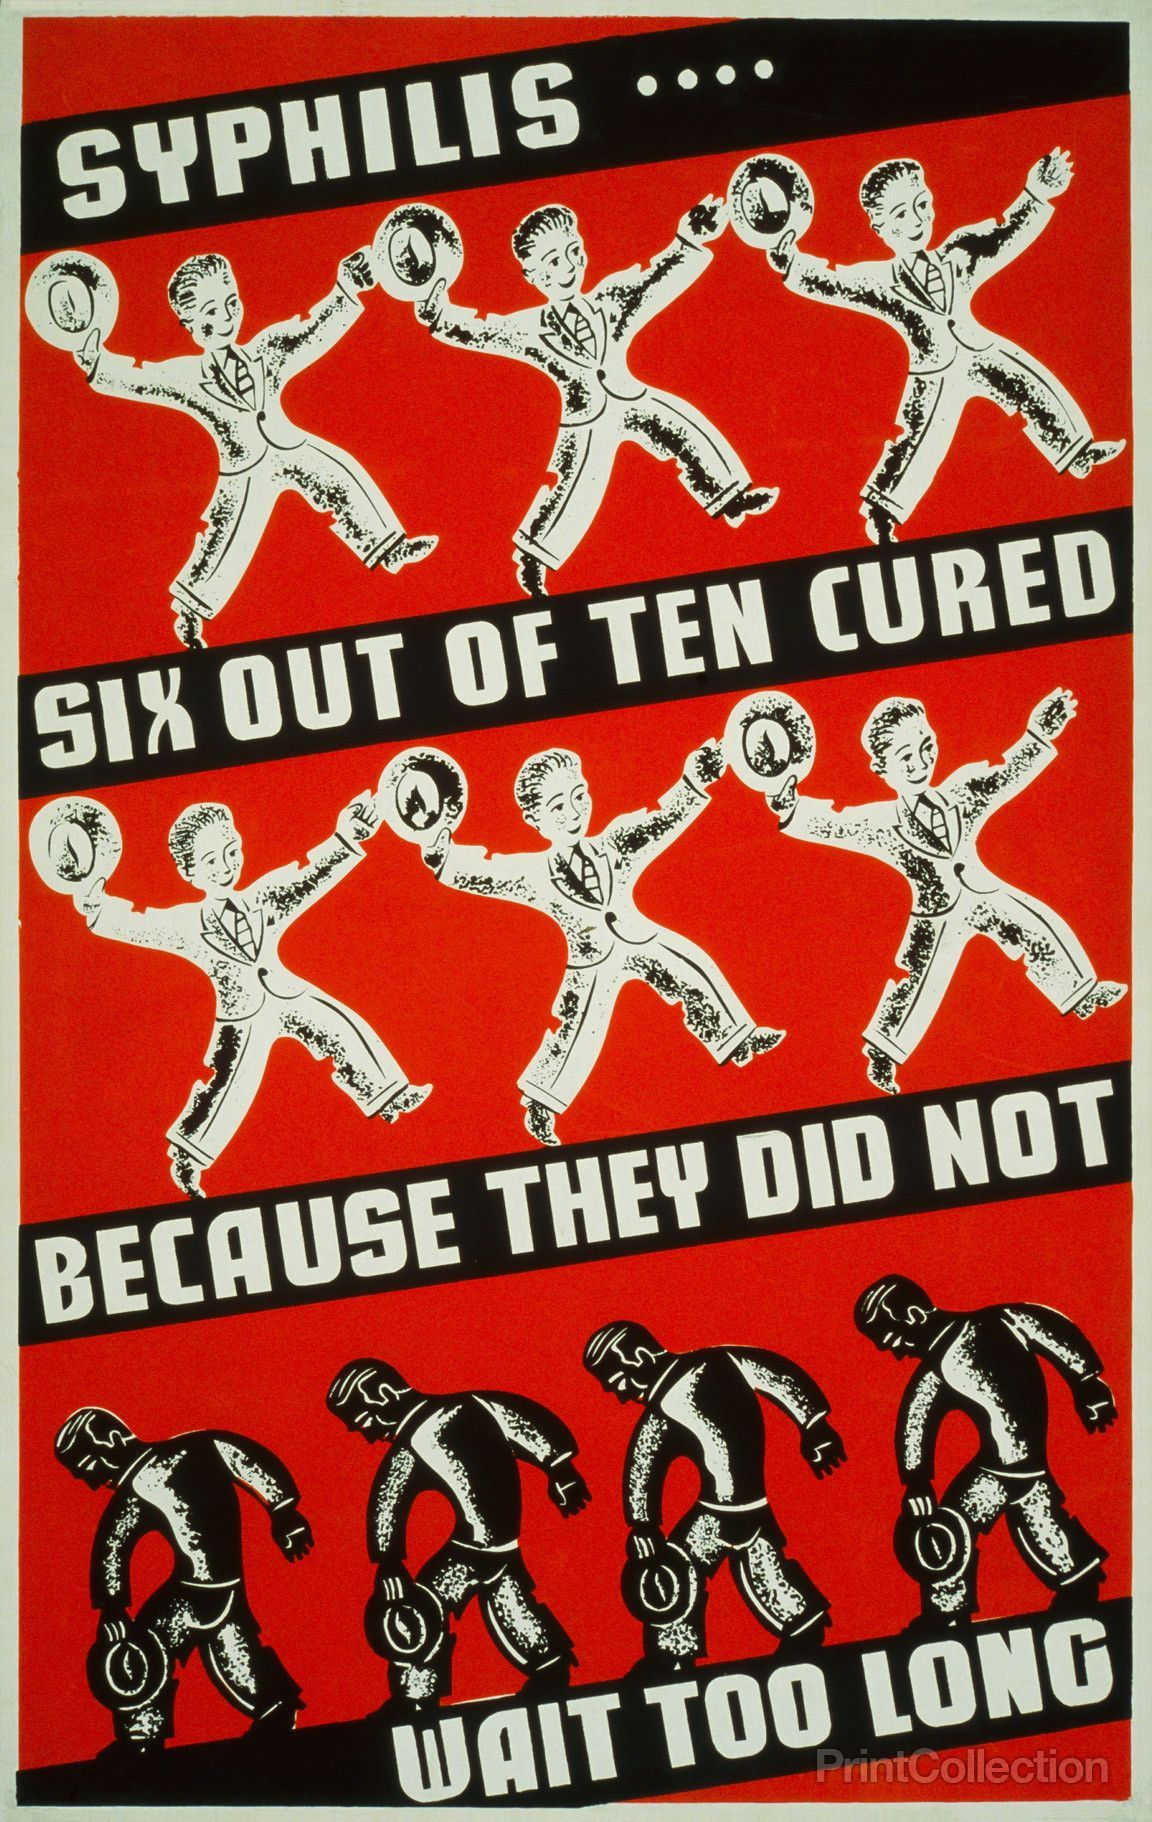 Syphilis .... Six out of Ten Cured